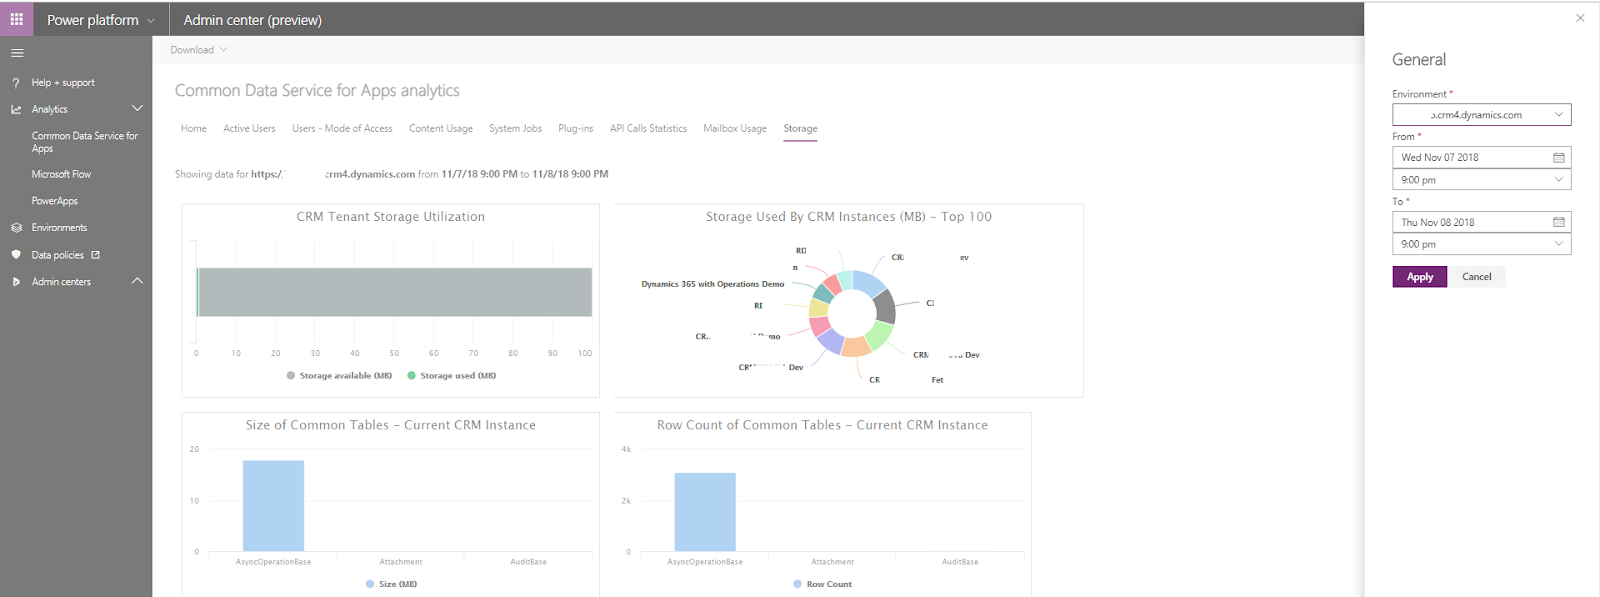 JOPX on CRM, Cloud and Analytics: 2018